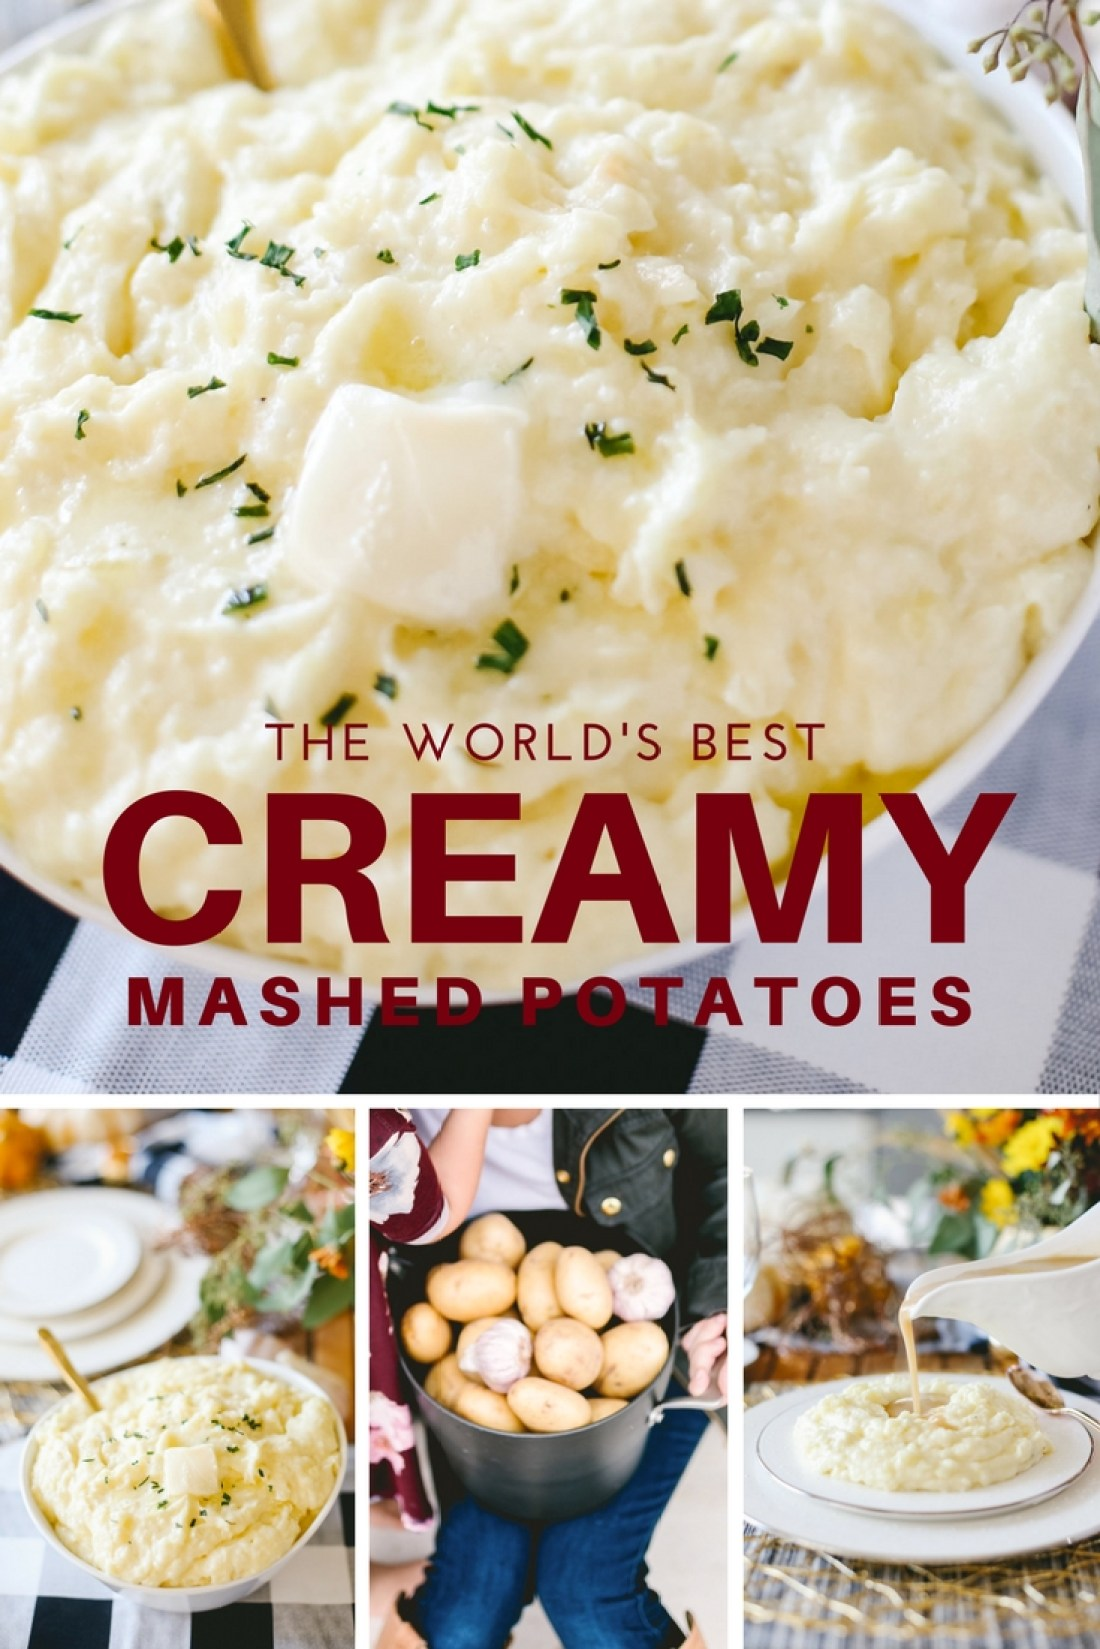 BEST Mashed Potatoes ever!!! Her tricky for Creamy makes ALL the difference!!